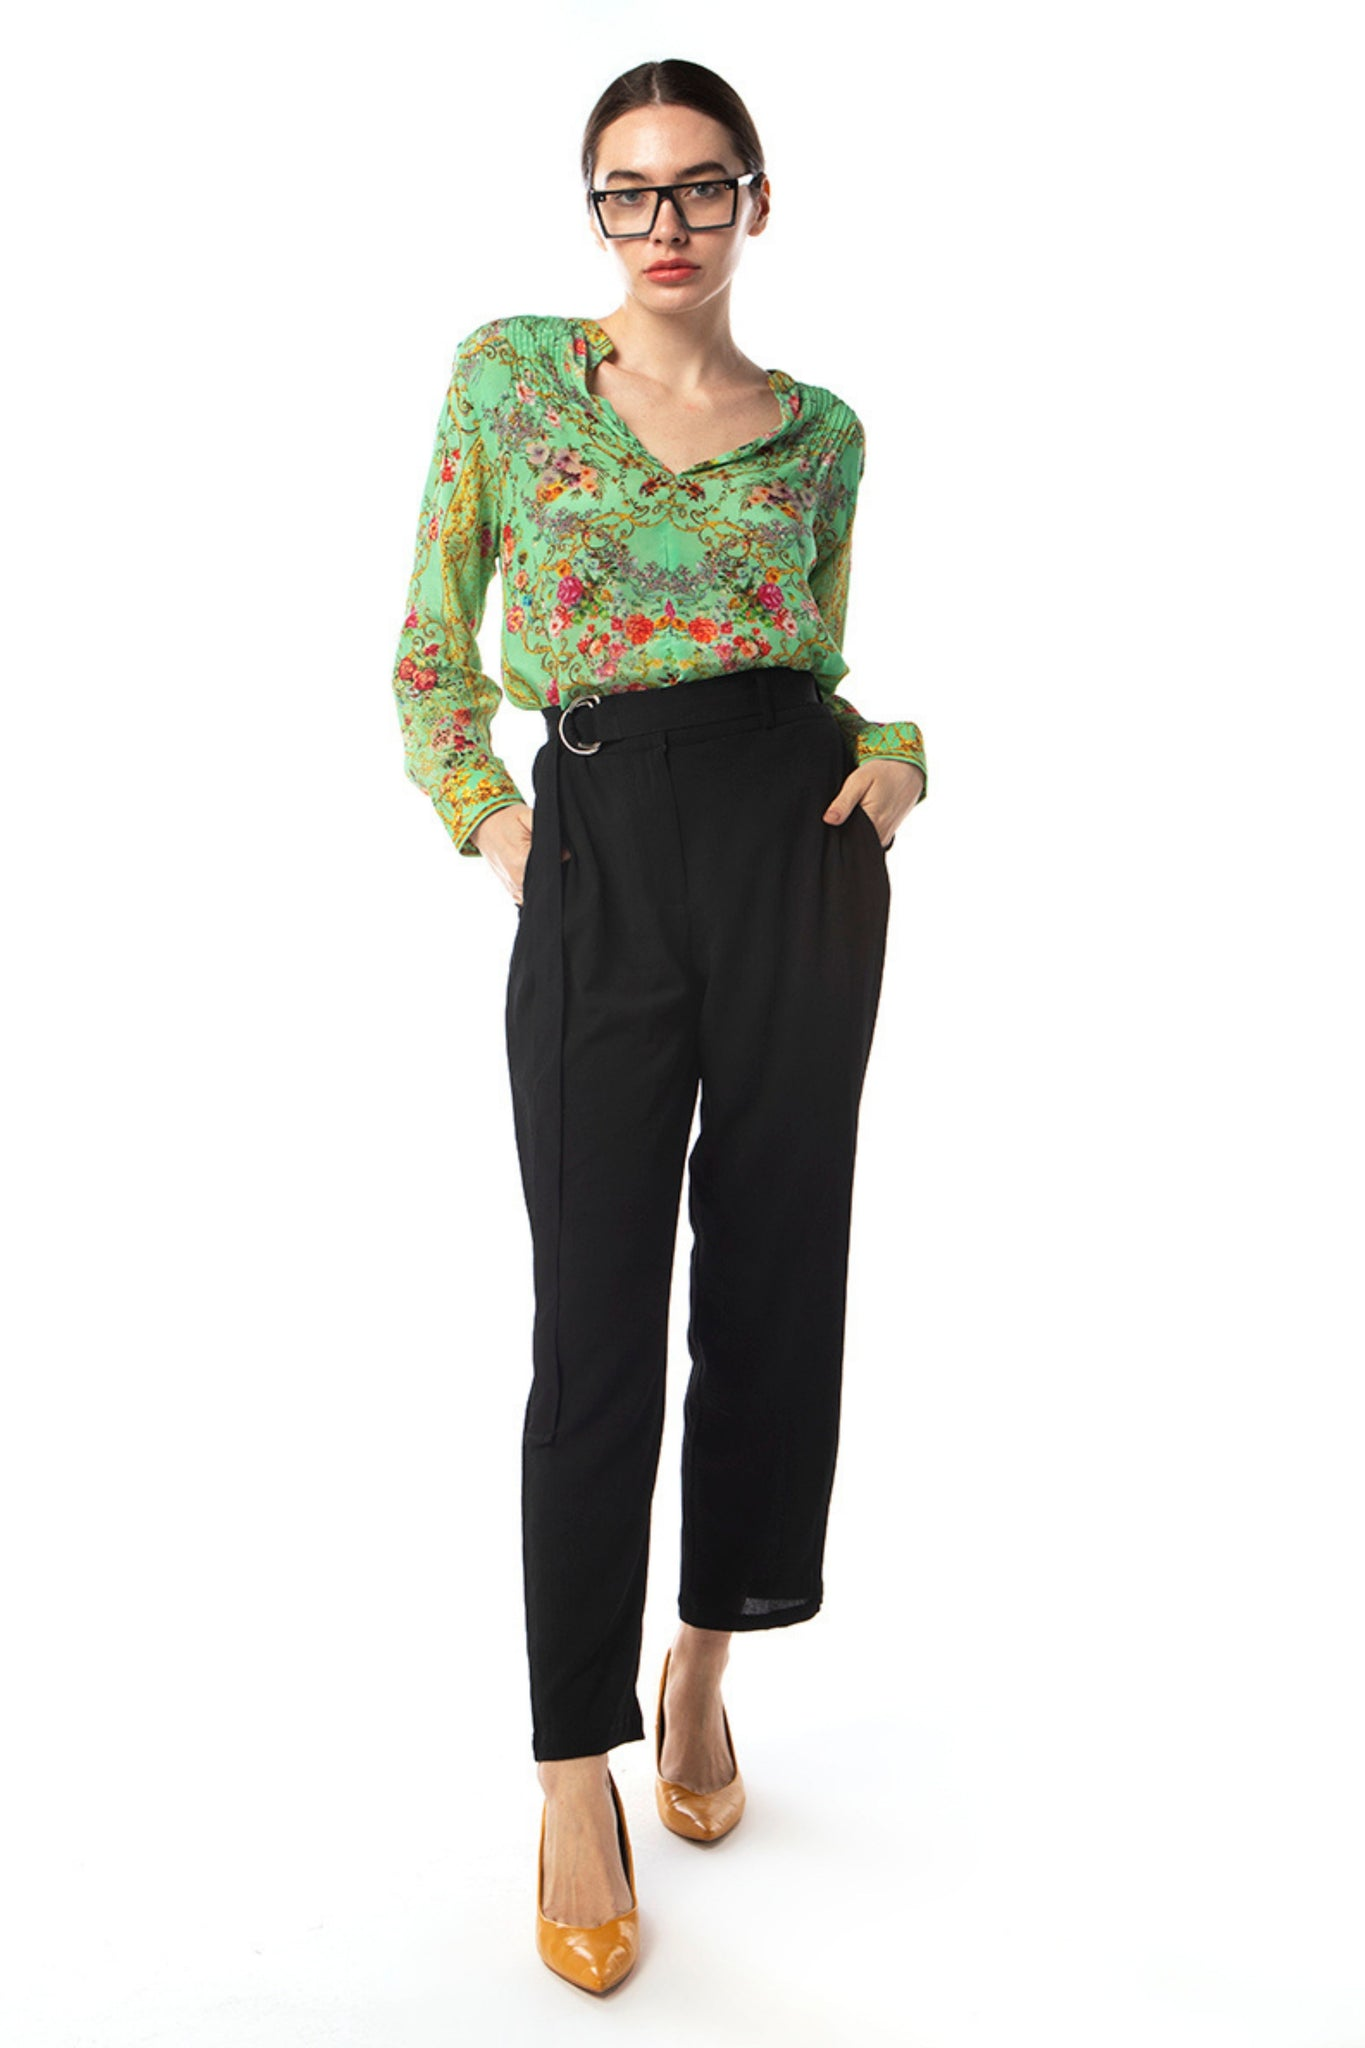 Buy Inoa Silk Blouson Pintuck Blouse in Chartreuse Green and Floral Print